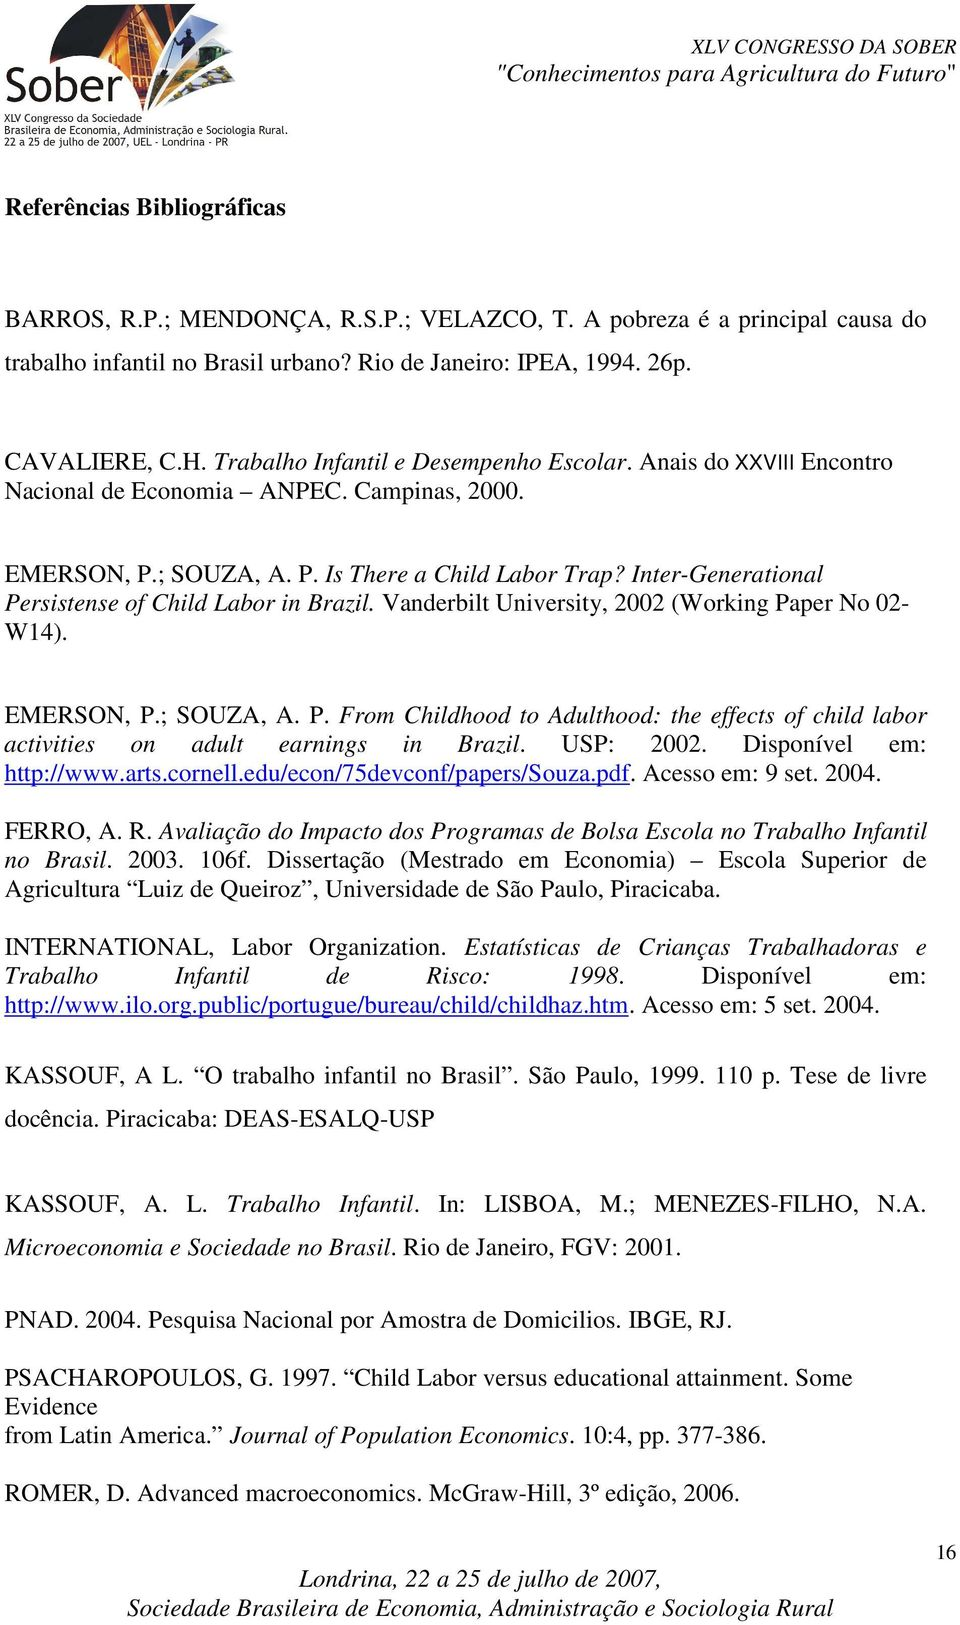 Iner-Generaional Persisense of Child Labor in Brazil. Vanderbil Universiy, 2002 (Working Paper No 02- W14). EMERSON, P.; SOUZA, A. P. From Childhood o Adulhood: he effecs of child labor aciviies on adul earnings in Brazil.